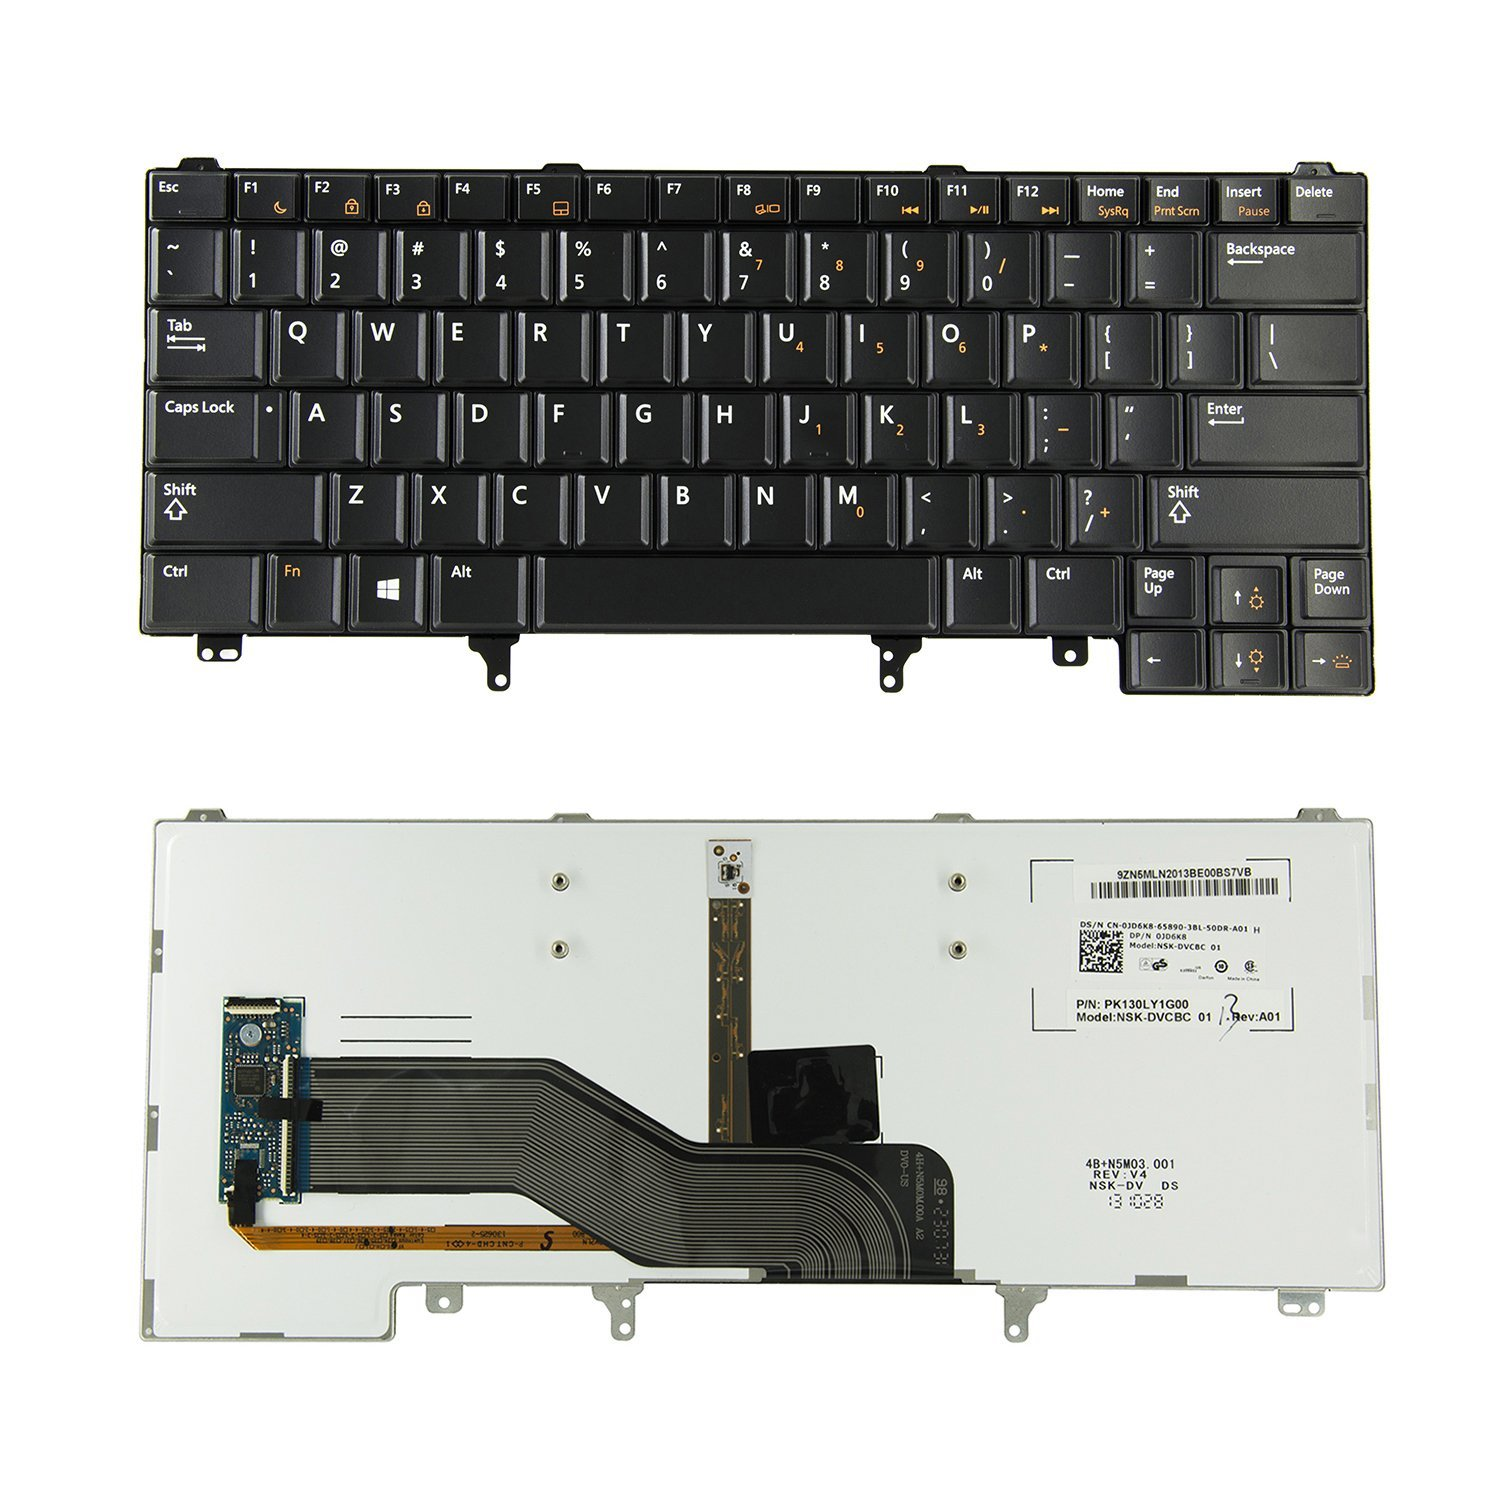 New Relacement US Backlit Keyboard for DELL Latitude E6320 E6330 E6420 E6430 E6440 E5420 E5430 Series Laptop, without Mouse Stick Pointer, 0JD6K8 024P9J NSK-DVCBC PK130LY1G00